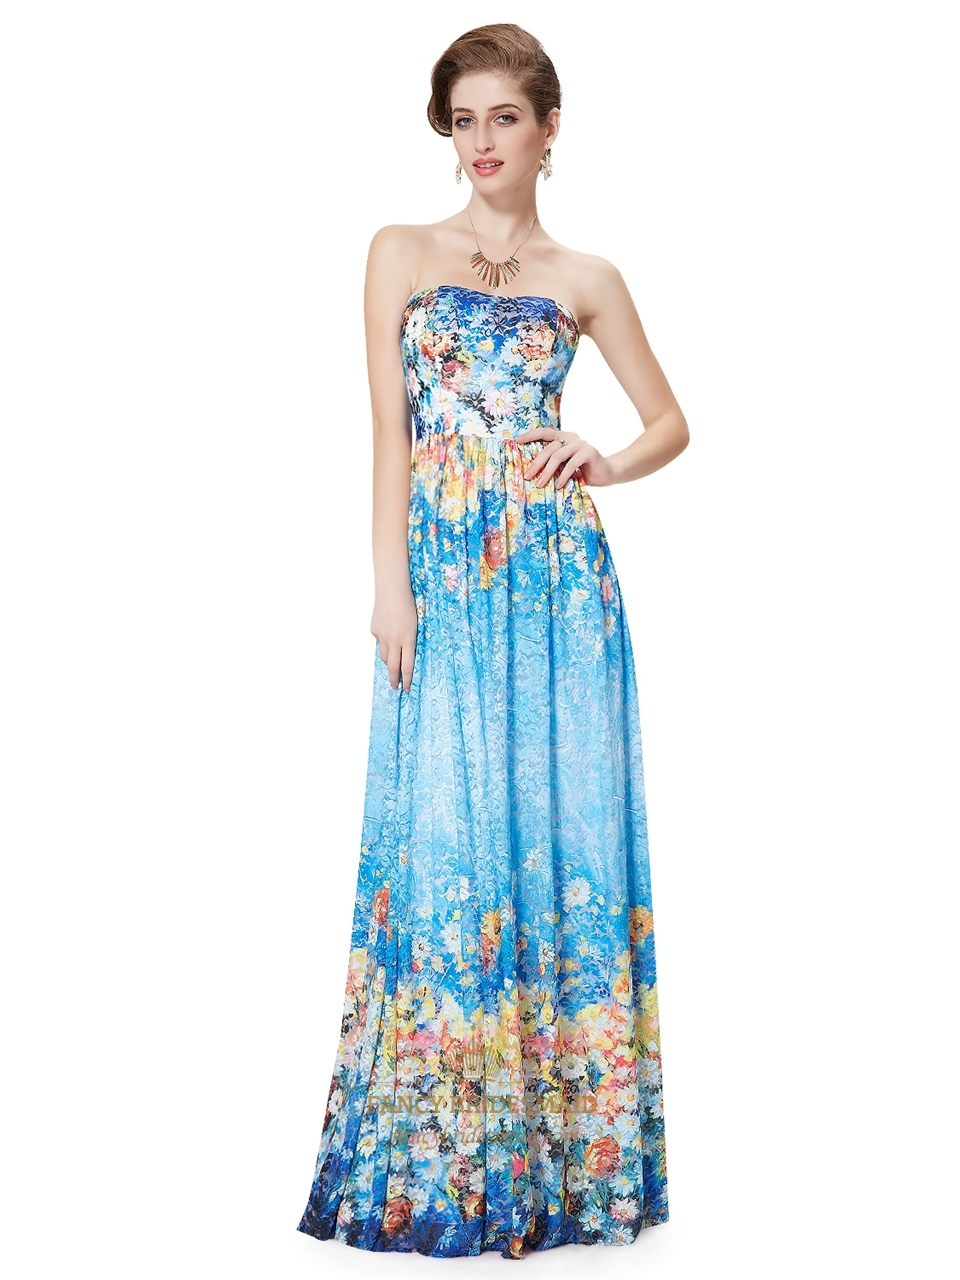 Blue floral print bridesmaid dressesstrapless padded floral print blue floral print bridesmaid dressesstrapless padded floral print sexy prom dress ombrellifo Choice Image